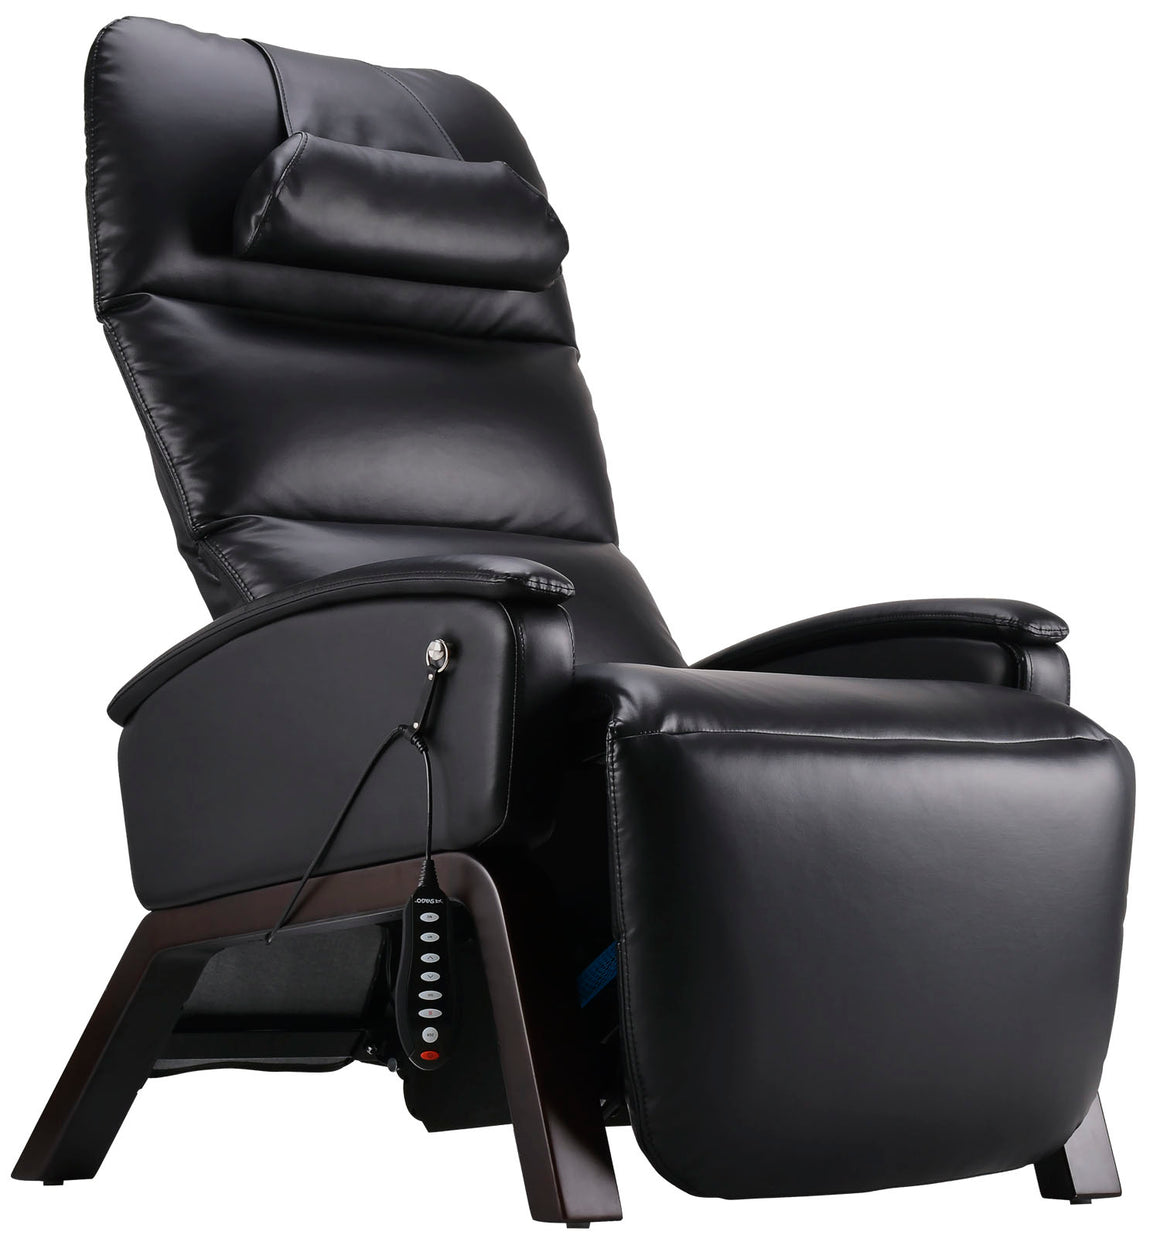 Svago Lite Zero Gravity Recliner - by Cozzia (black with dark walnut finish)